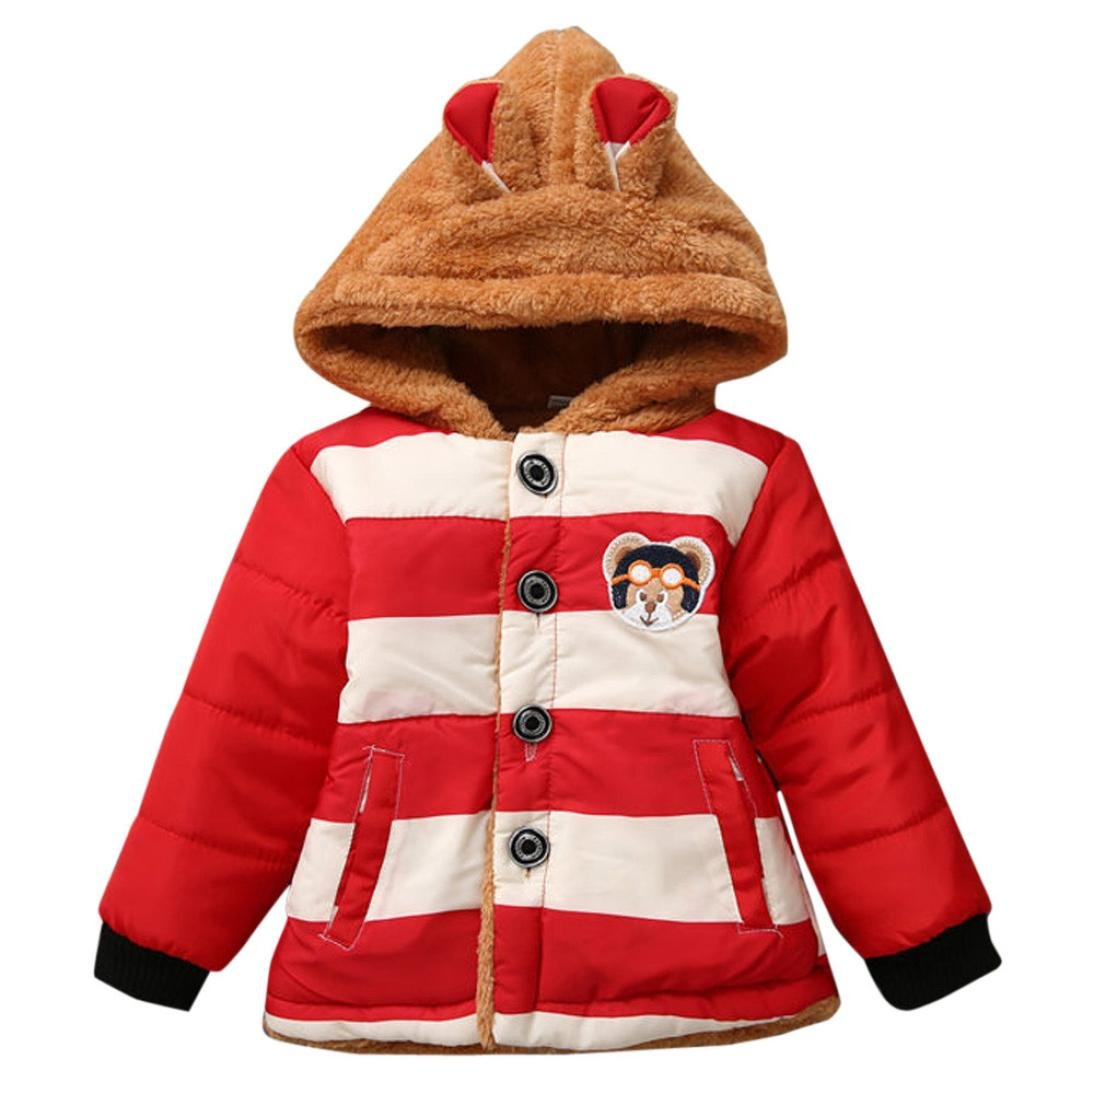 For 0-4 Years old Kids Coats , Wanshop® Baby Toddler Boys Girls Autumn Winter Cute Hooded Coat Cloak Thick Warm Jacket Clothes